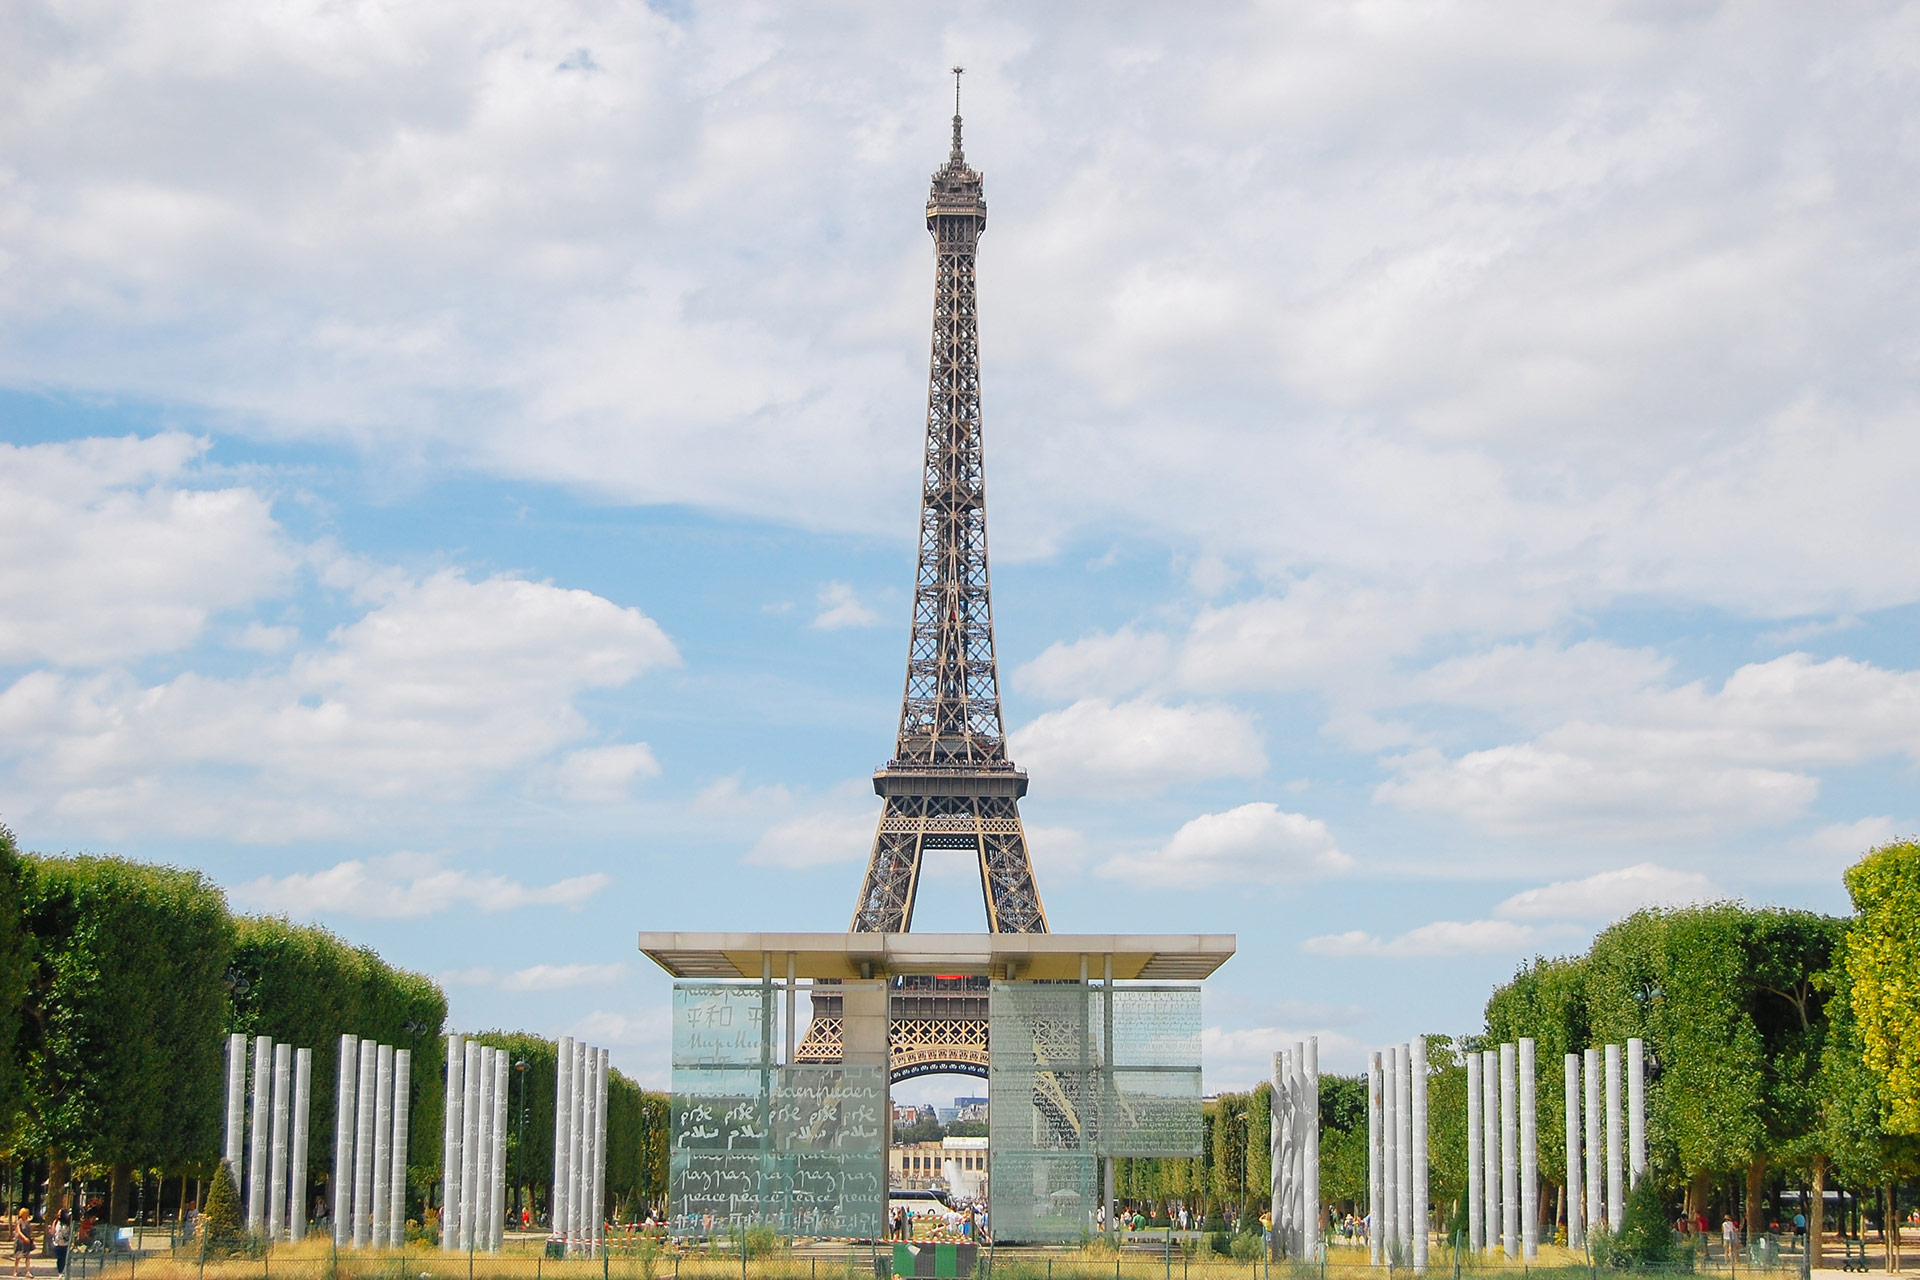 Wander over to the iconic Eiffel Tower and the lovely Champs de Mars gardens